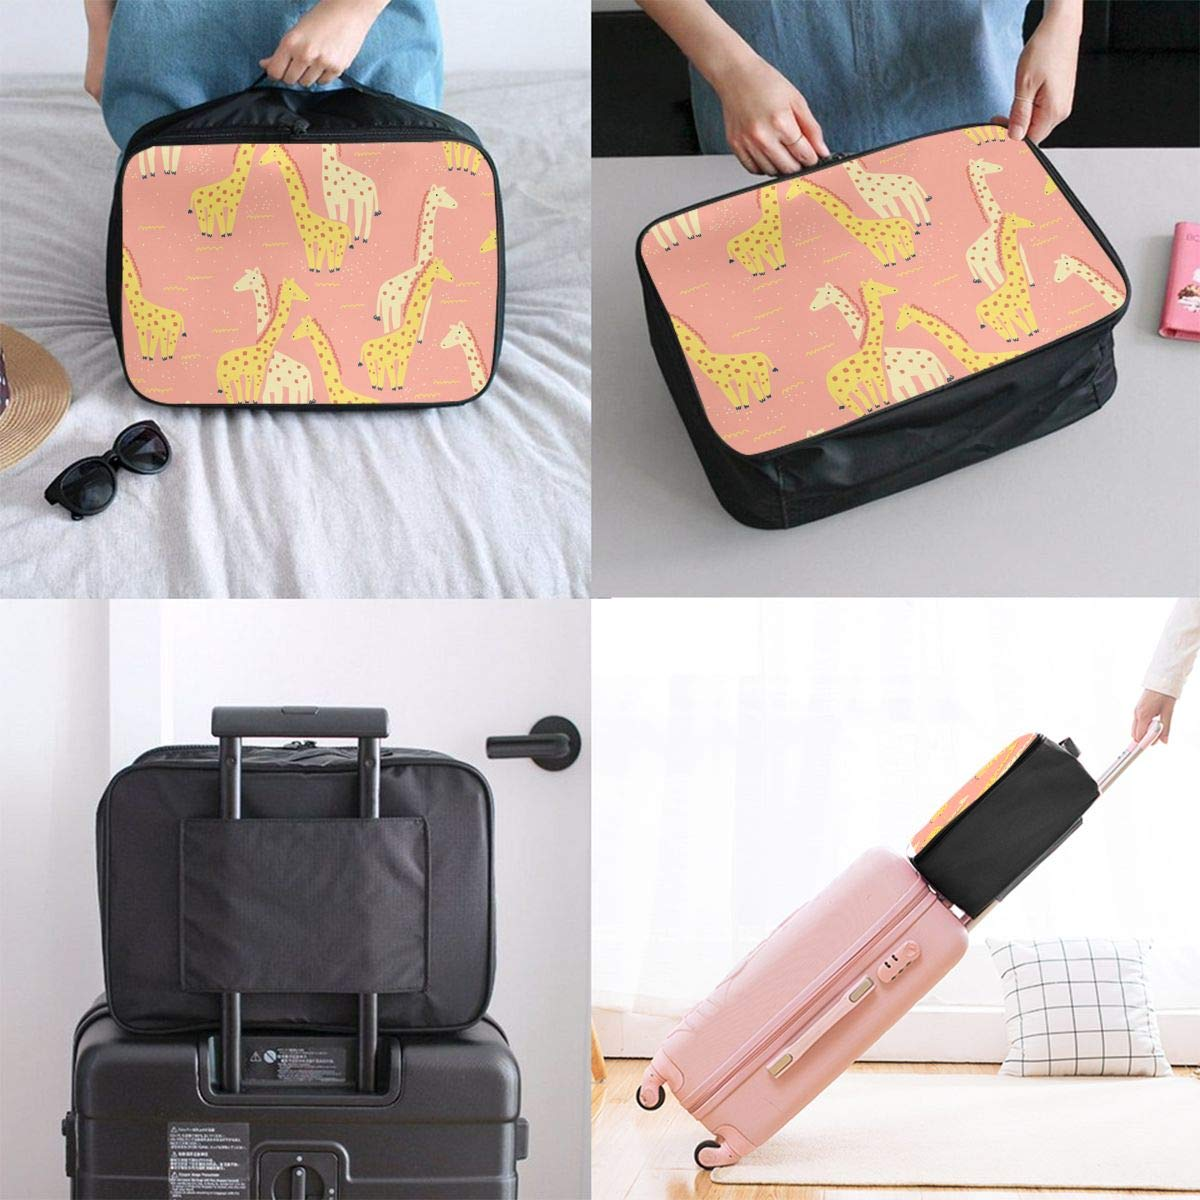 Pink Yellow Giraffes Lightweight Large Capacity Portable Luggage Bag Travel Duffel Bag Storage Carry Luggage Duffle Tote Bag